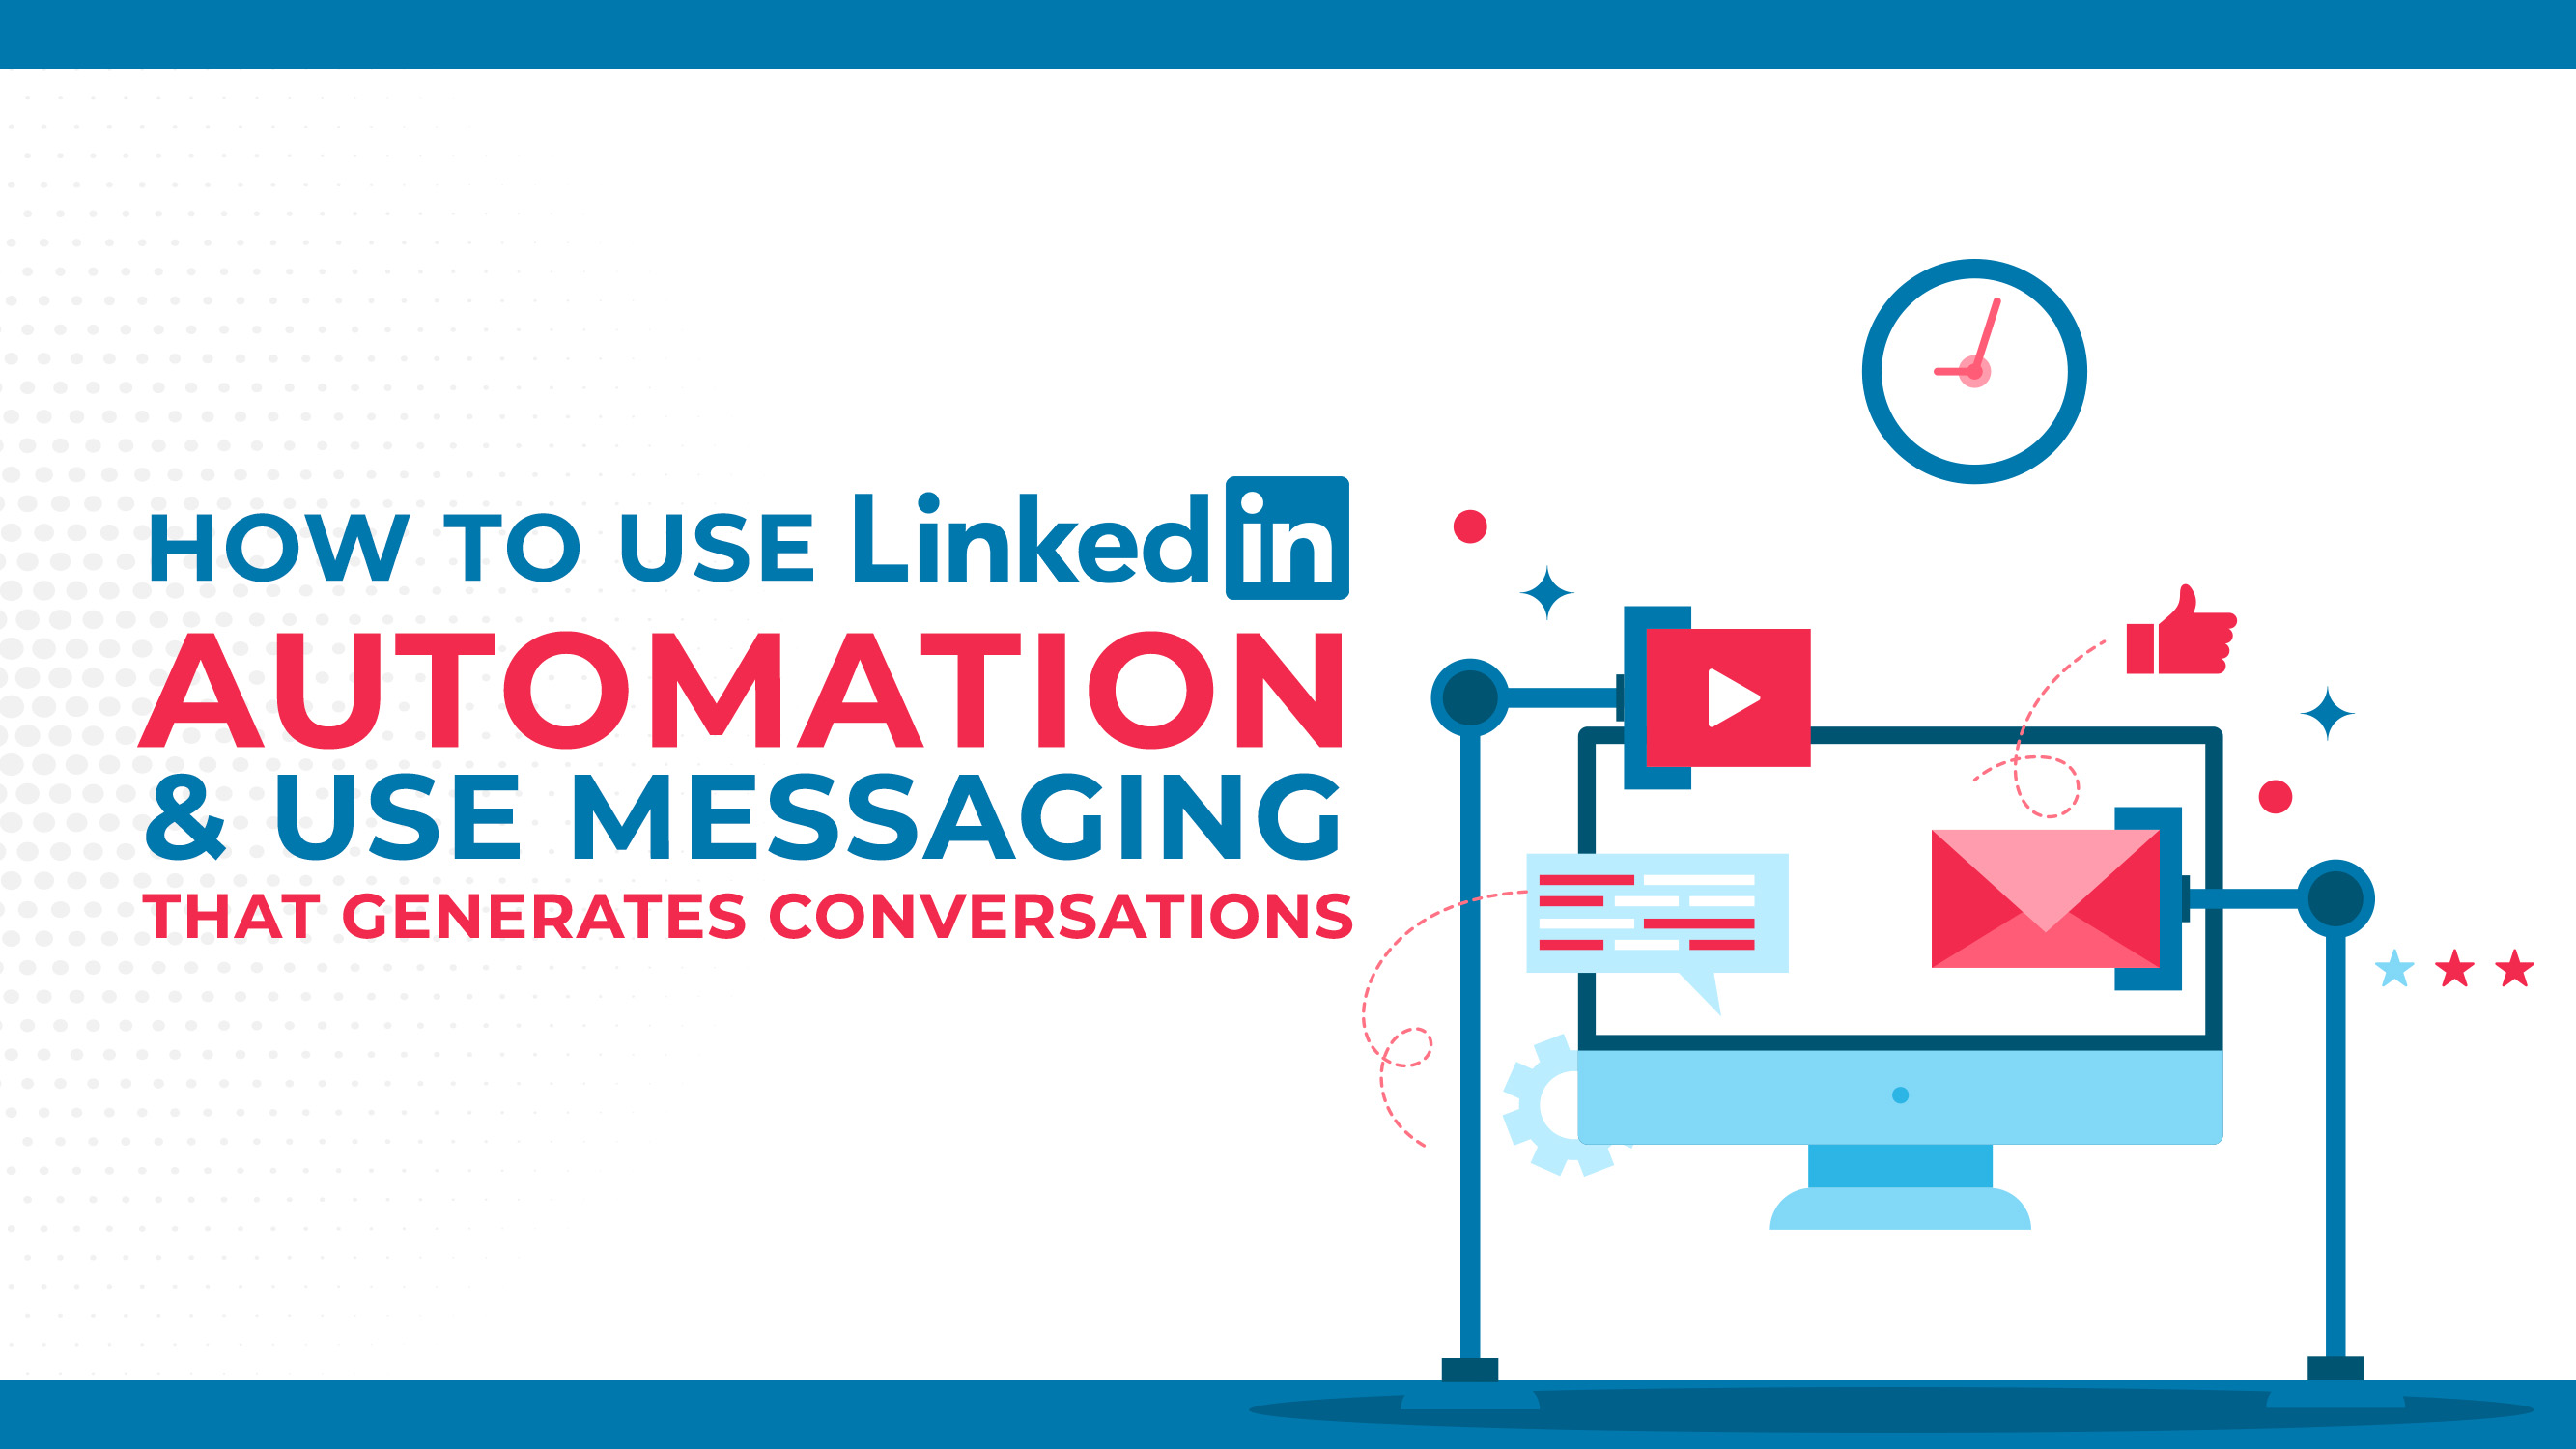 How To Use LinkedIn Automation & Use Messaging That Generates Conversations